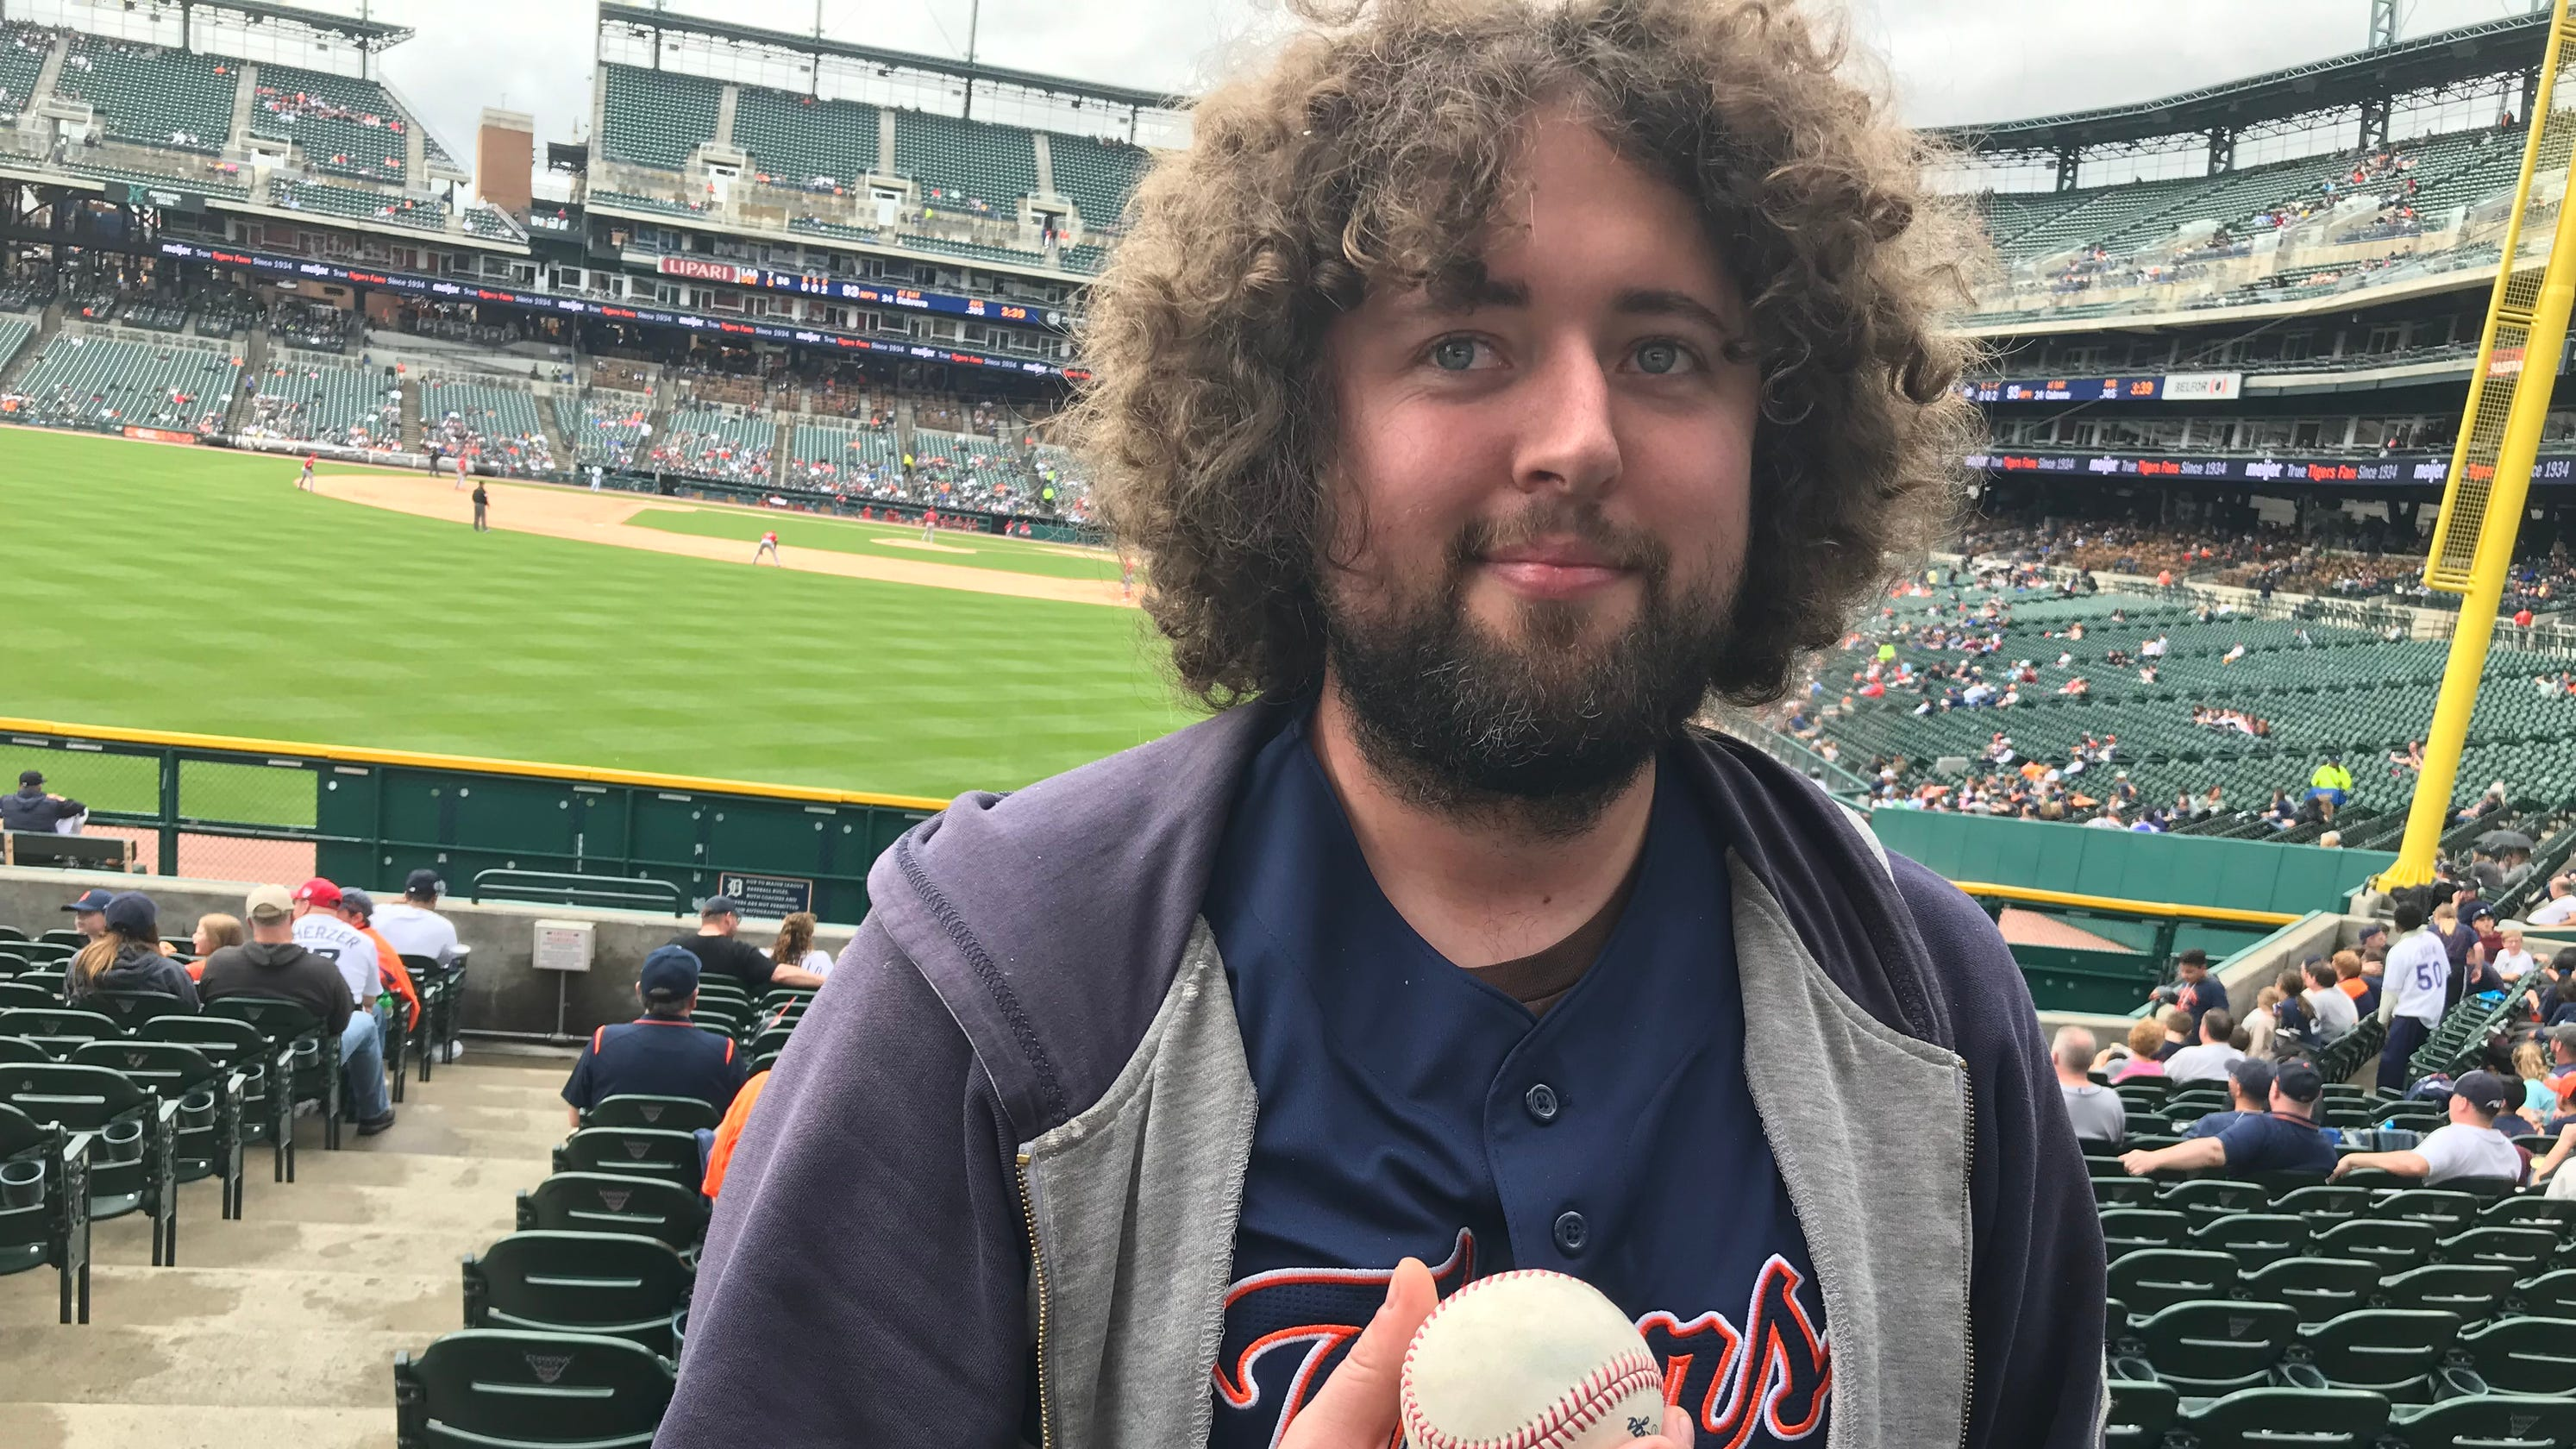 I don't want money': Tigers fan turns down four offers, keeps Albert